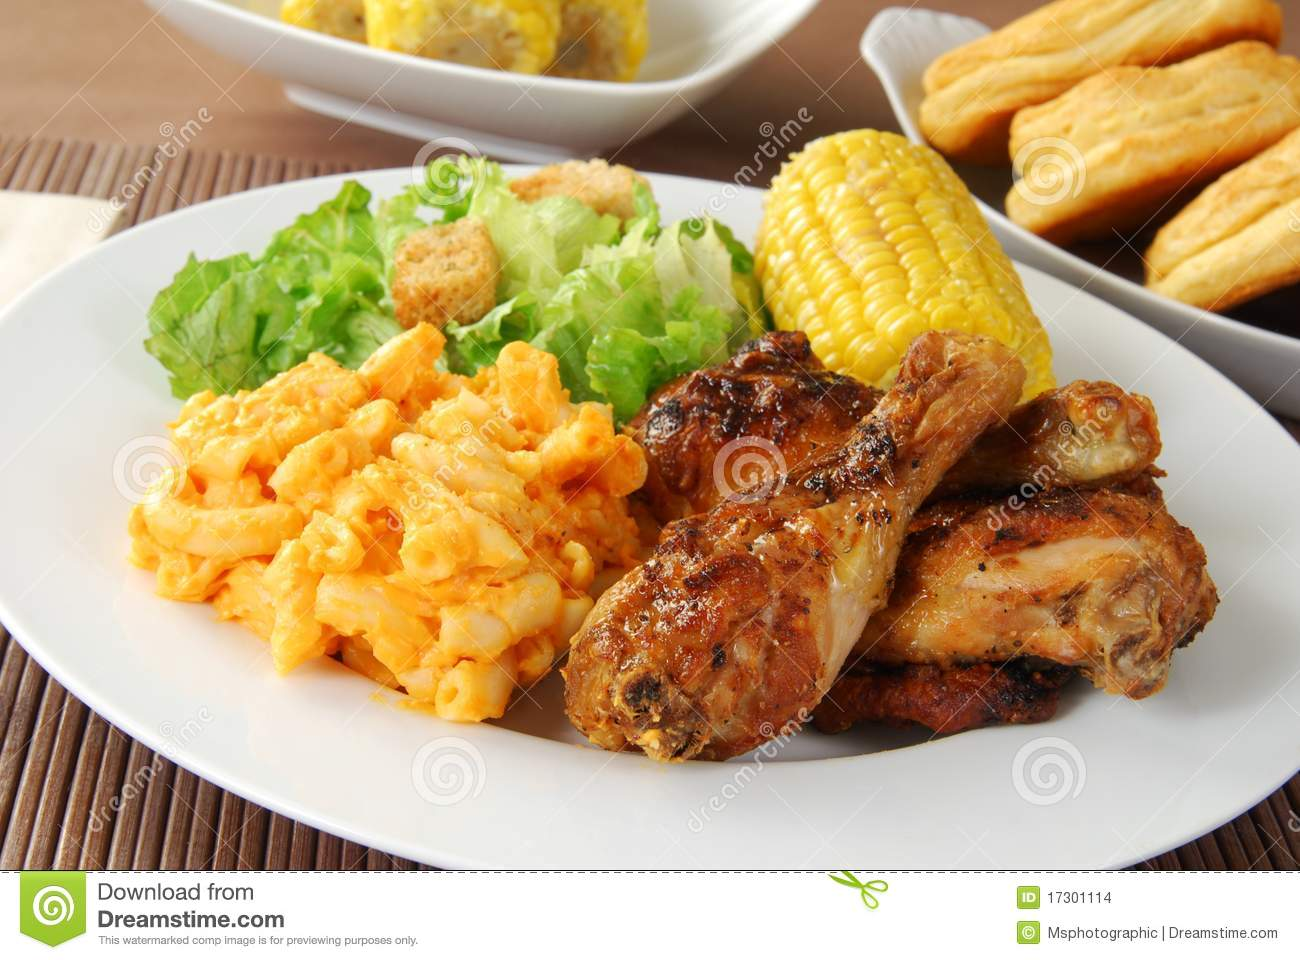 Fried Chicken With Macaroni And Cheese Stock Images - Image: 17301114